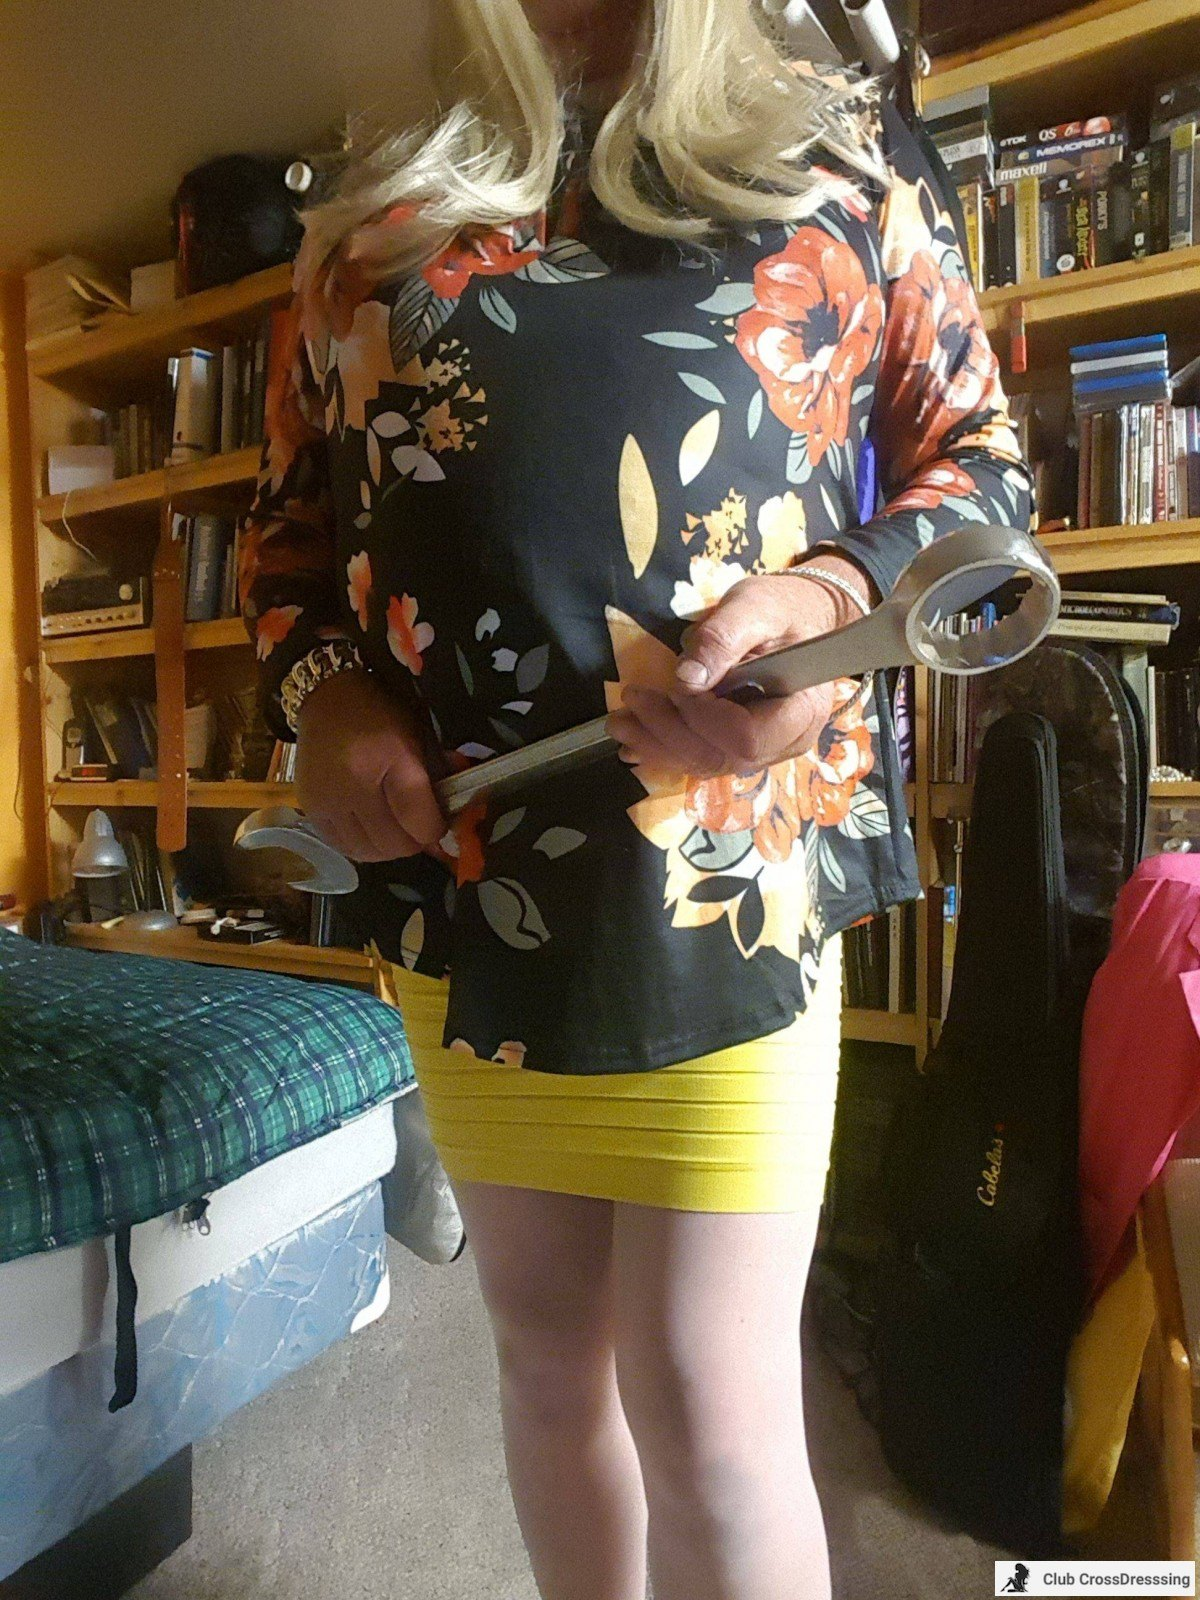 Brianna-Leah gets started on her working day with a very big wrench or spanner